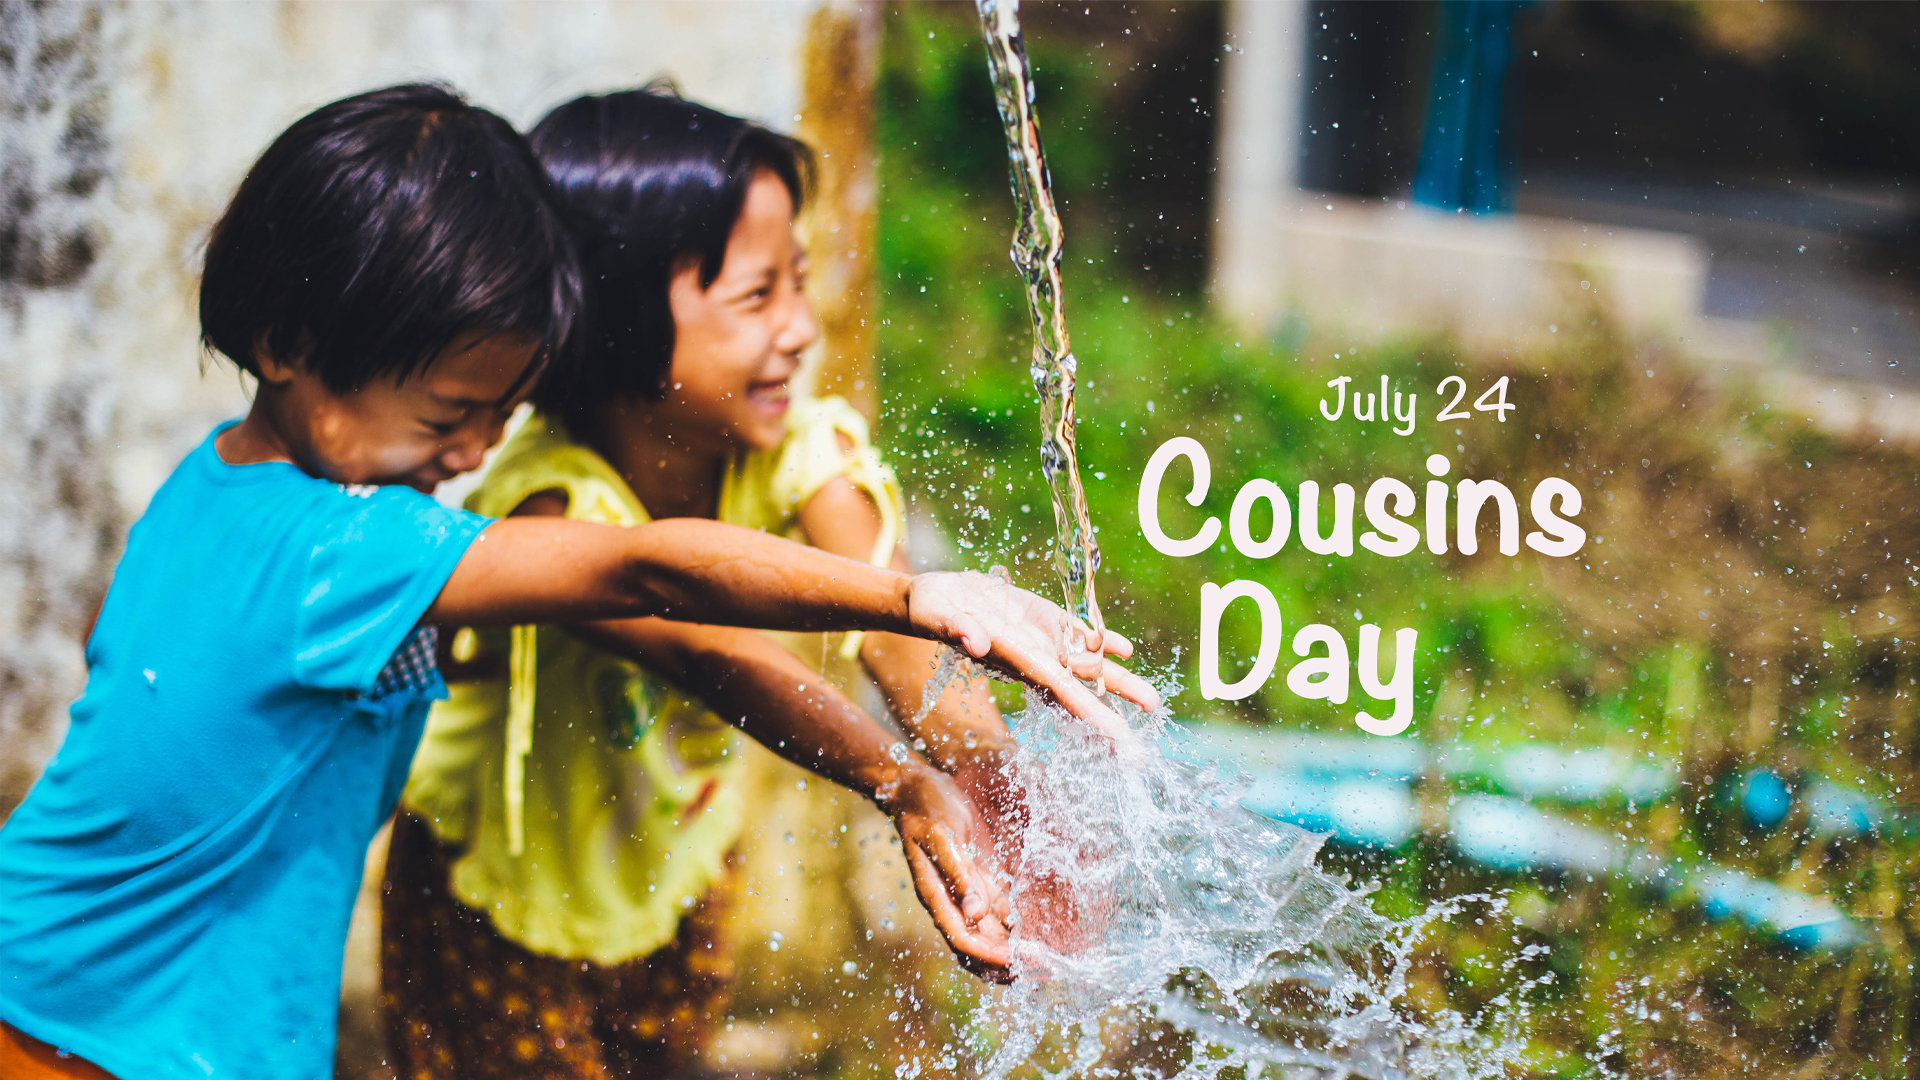 Cousins Day July 24 Digital Signage Graphic